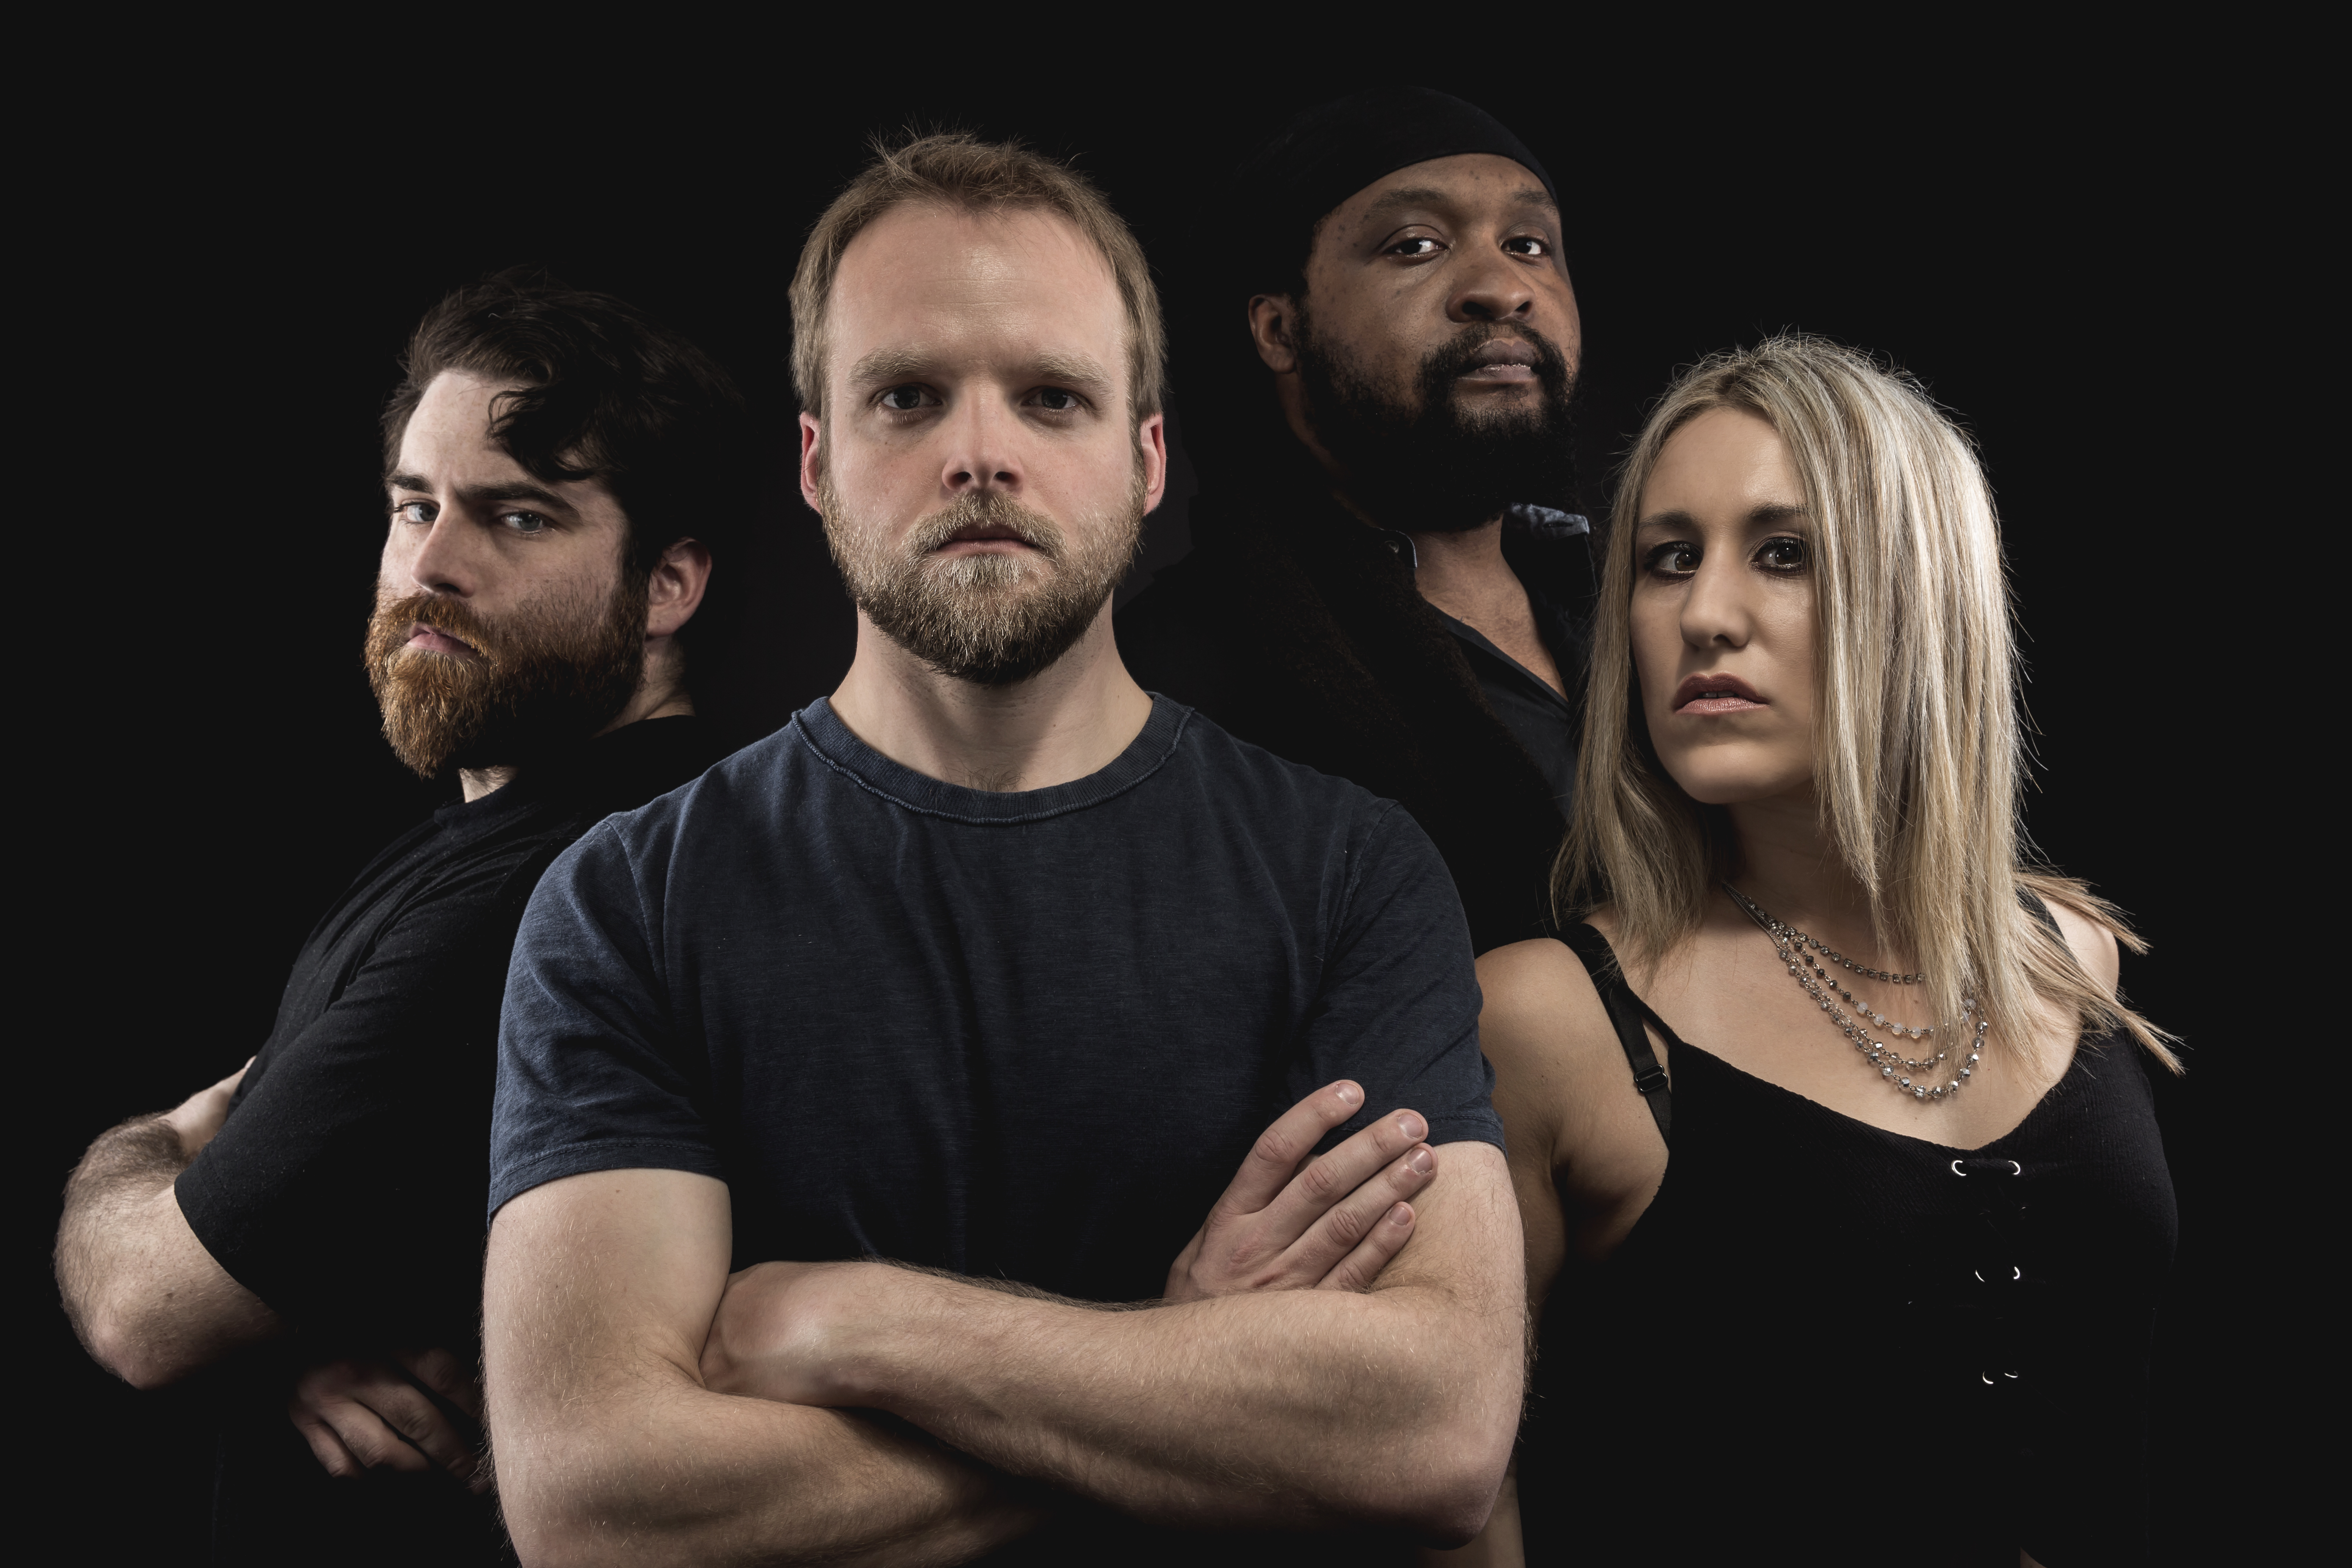 """Feast Your Eyes on Protean Collective's Full-Band Playthrough of """"Under Siege"""""""